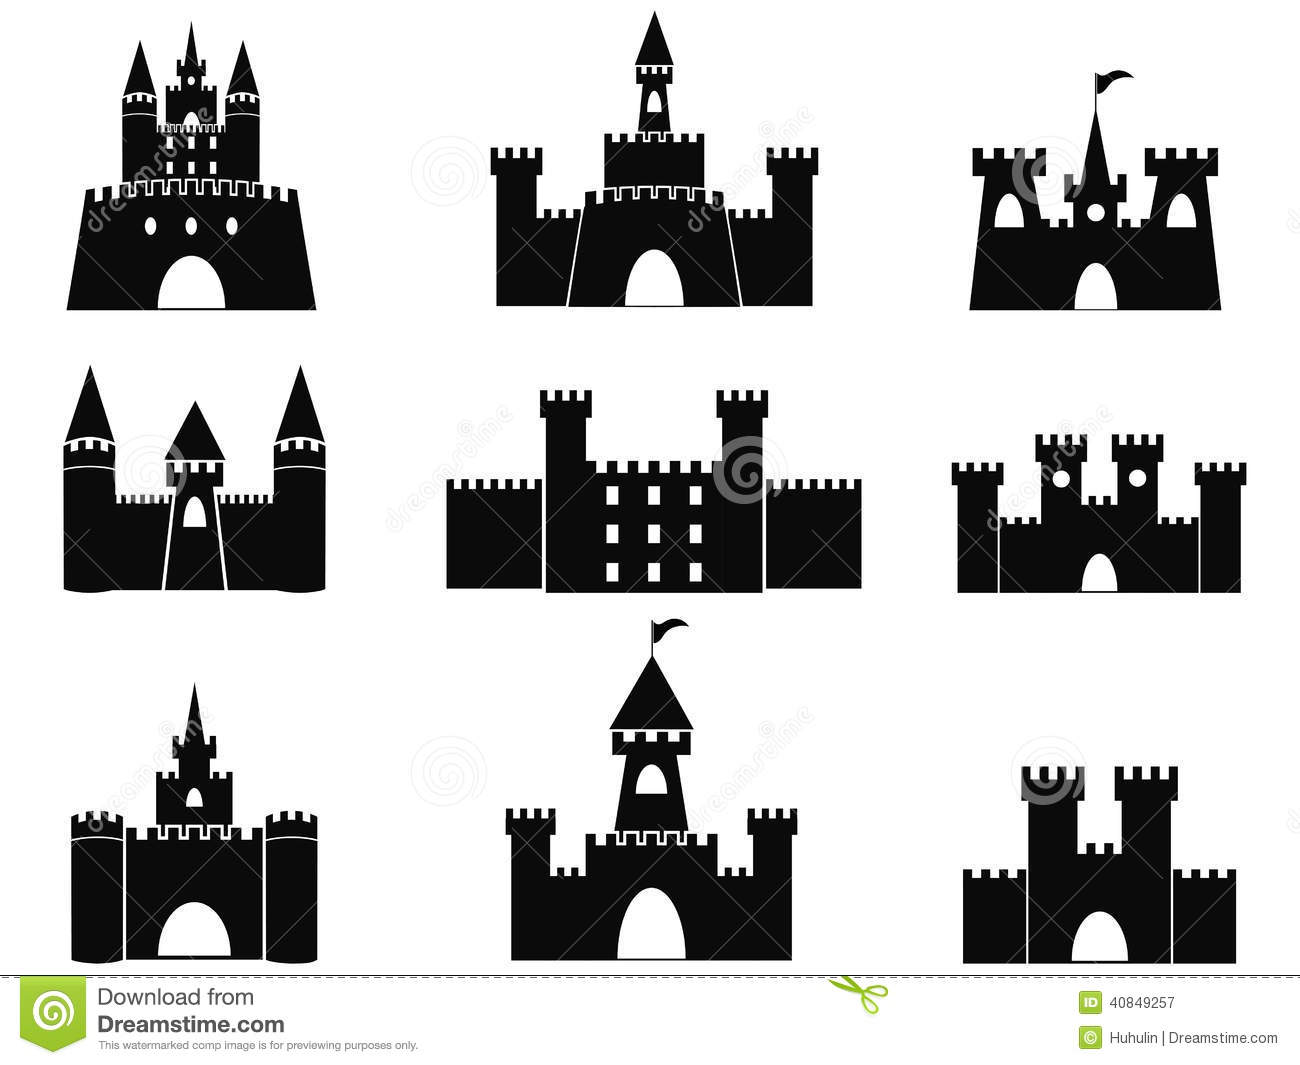 Isolated black castle icons from white background.